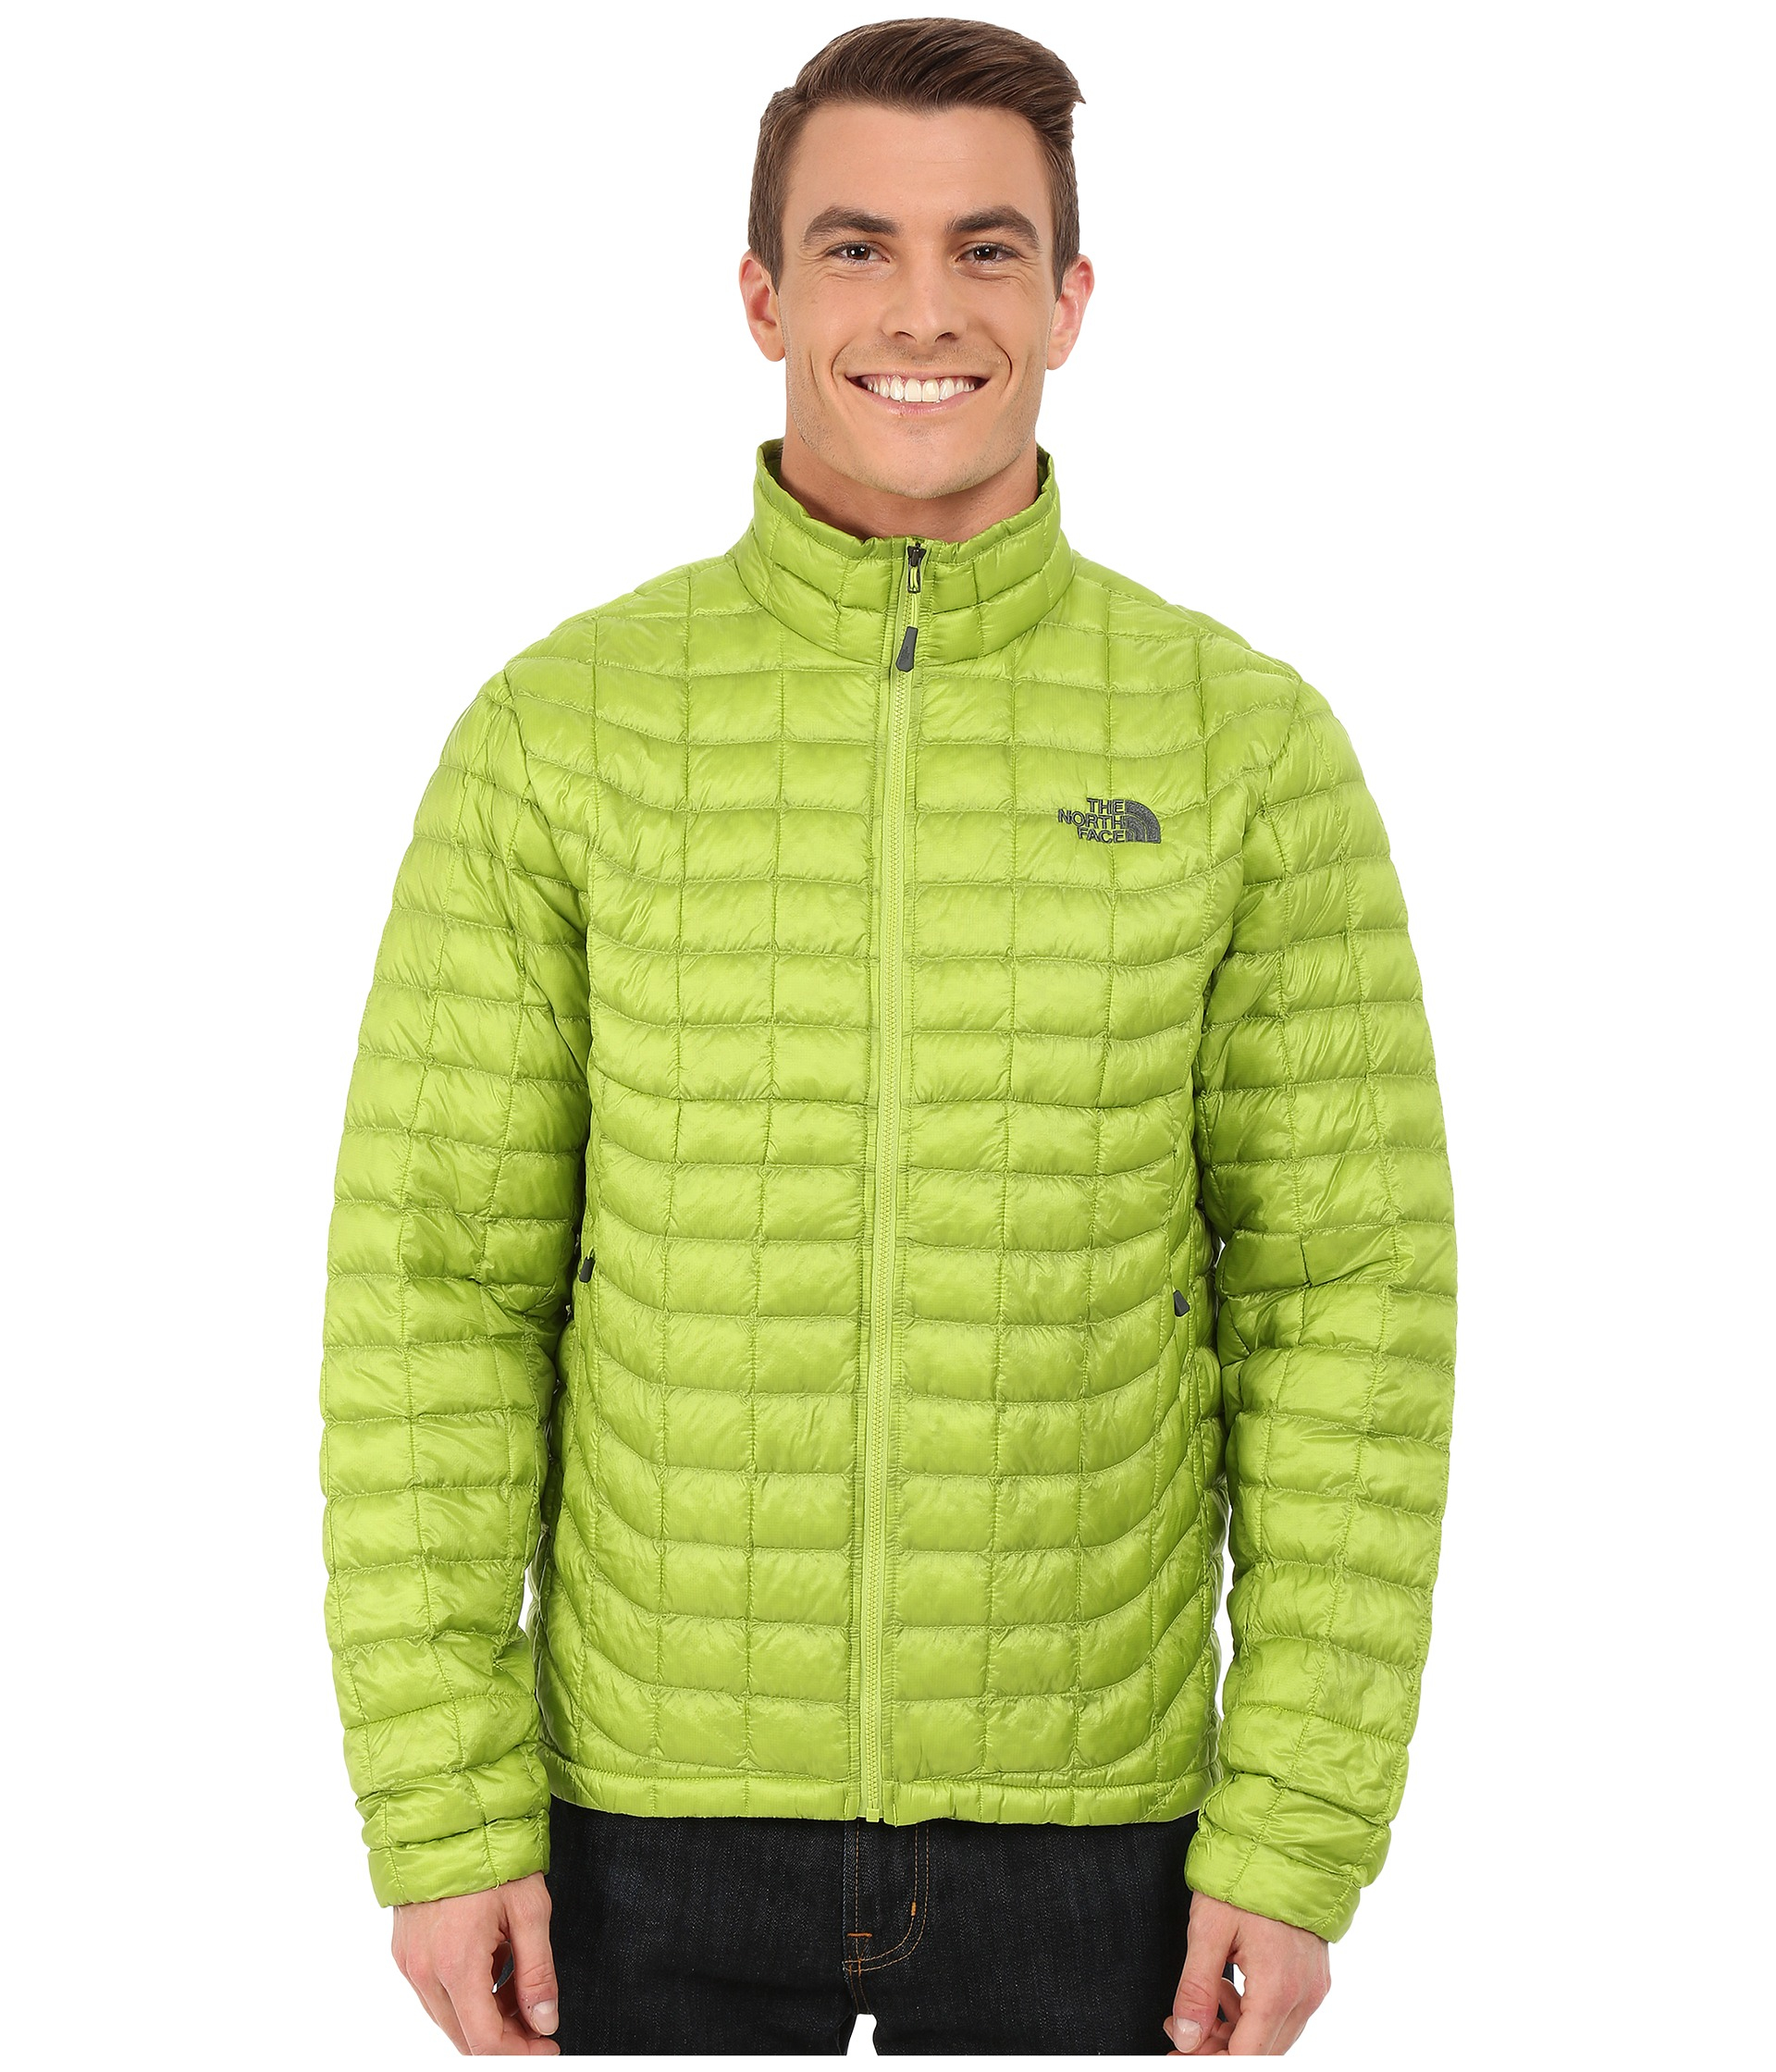 Lyst - The North Face Thermoball™ Full Zip Jacket in Green for Men 2c4d317bef83